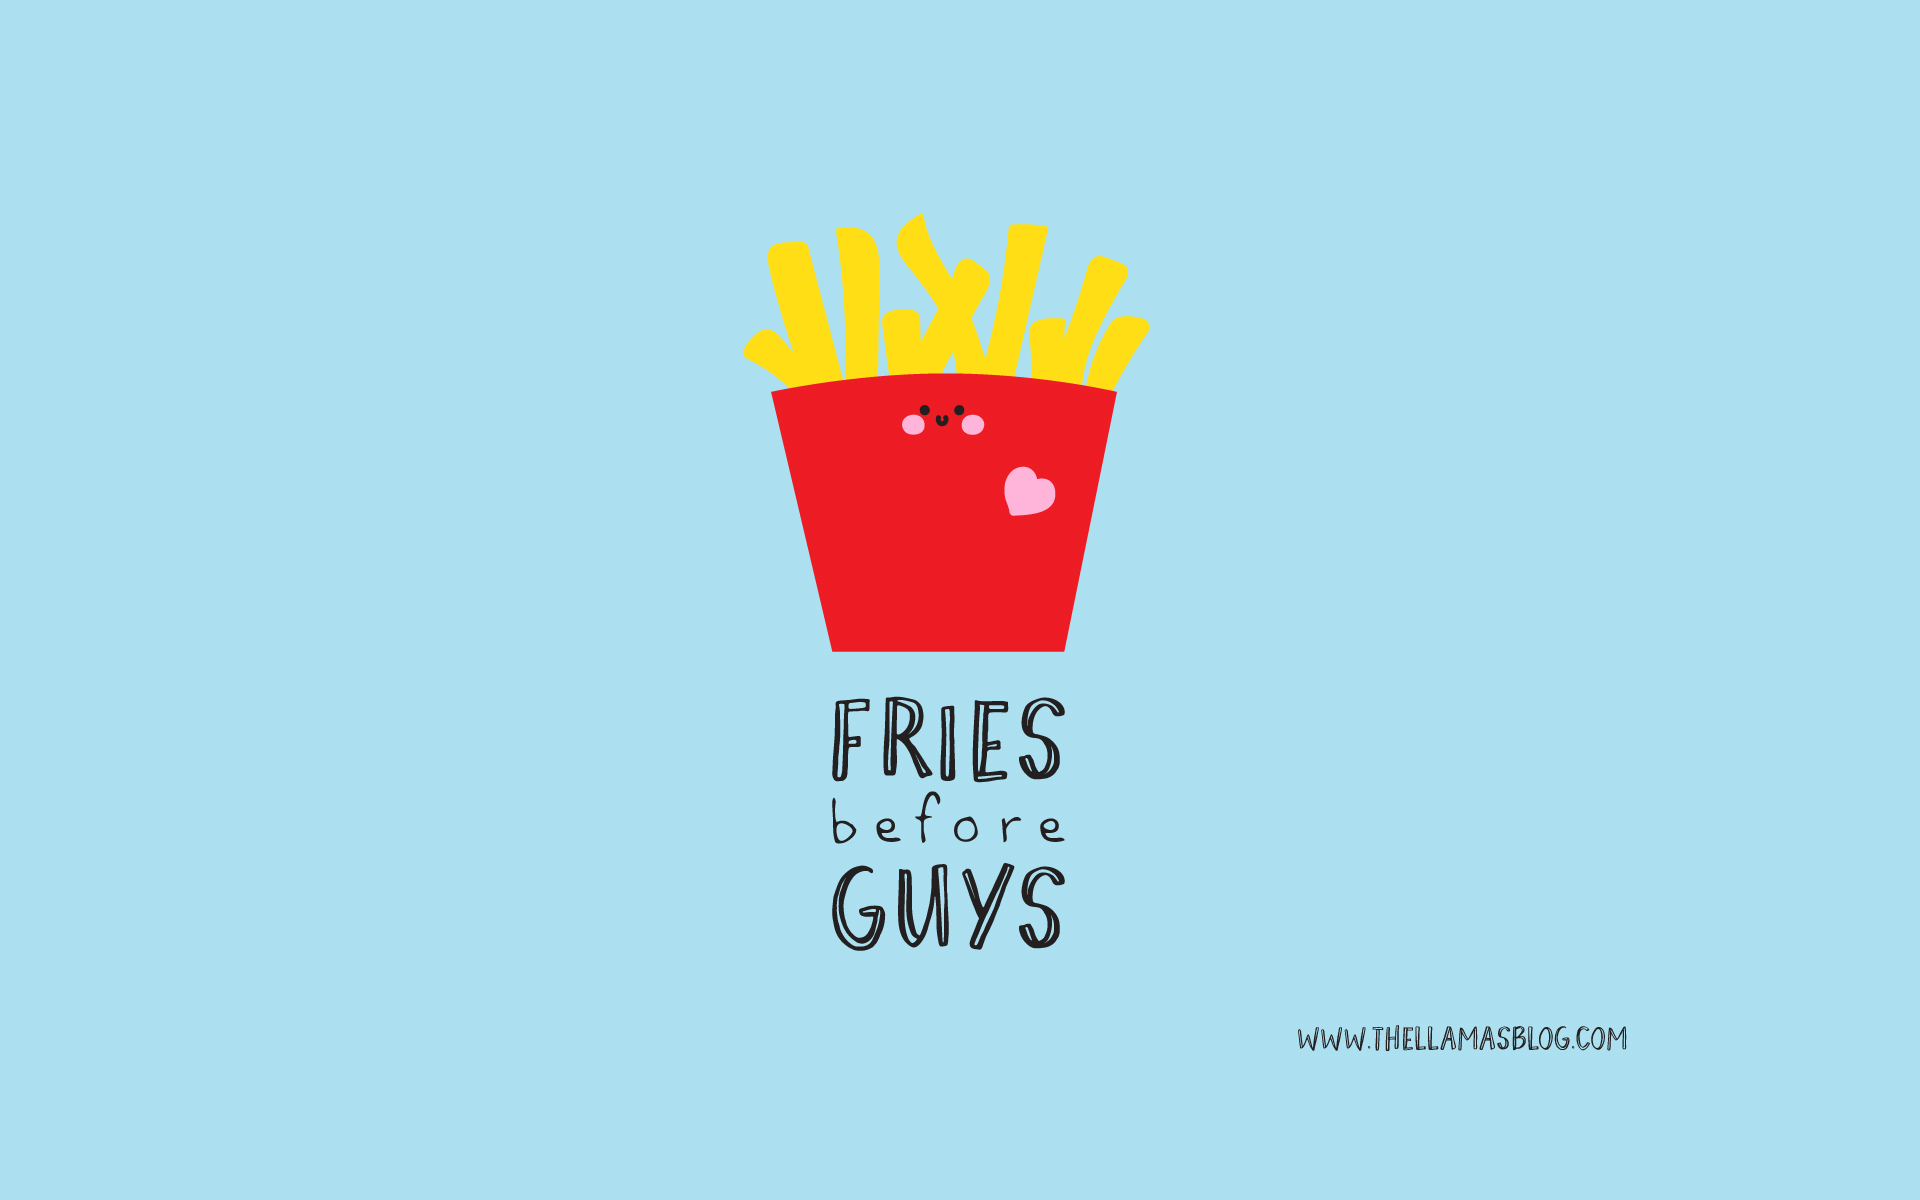 pies before guys free wallpapers for pc and mobile